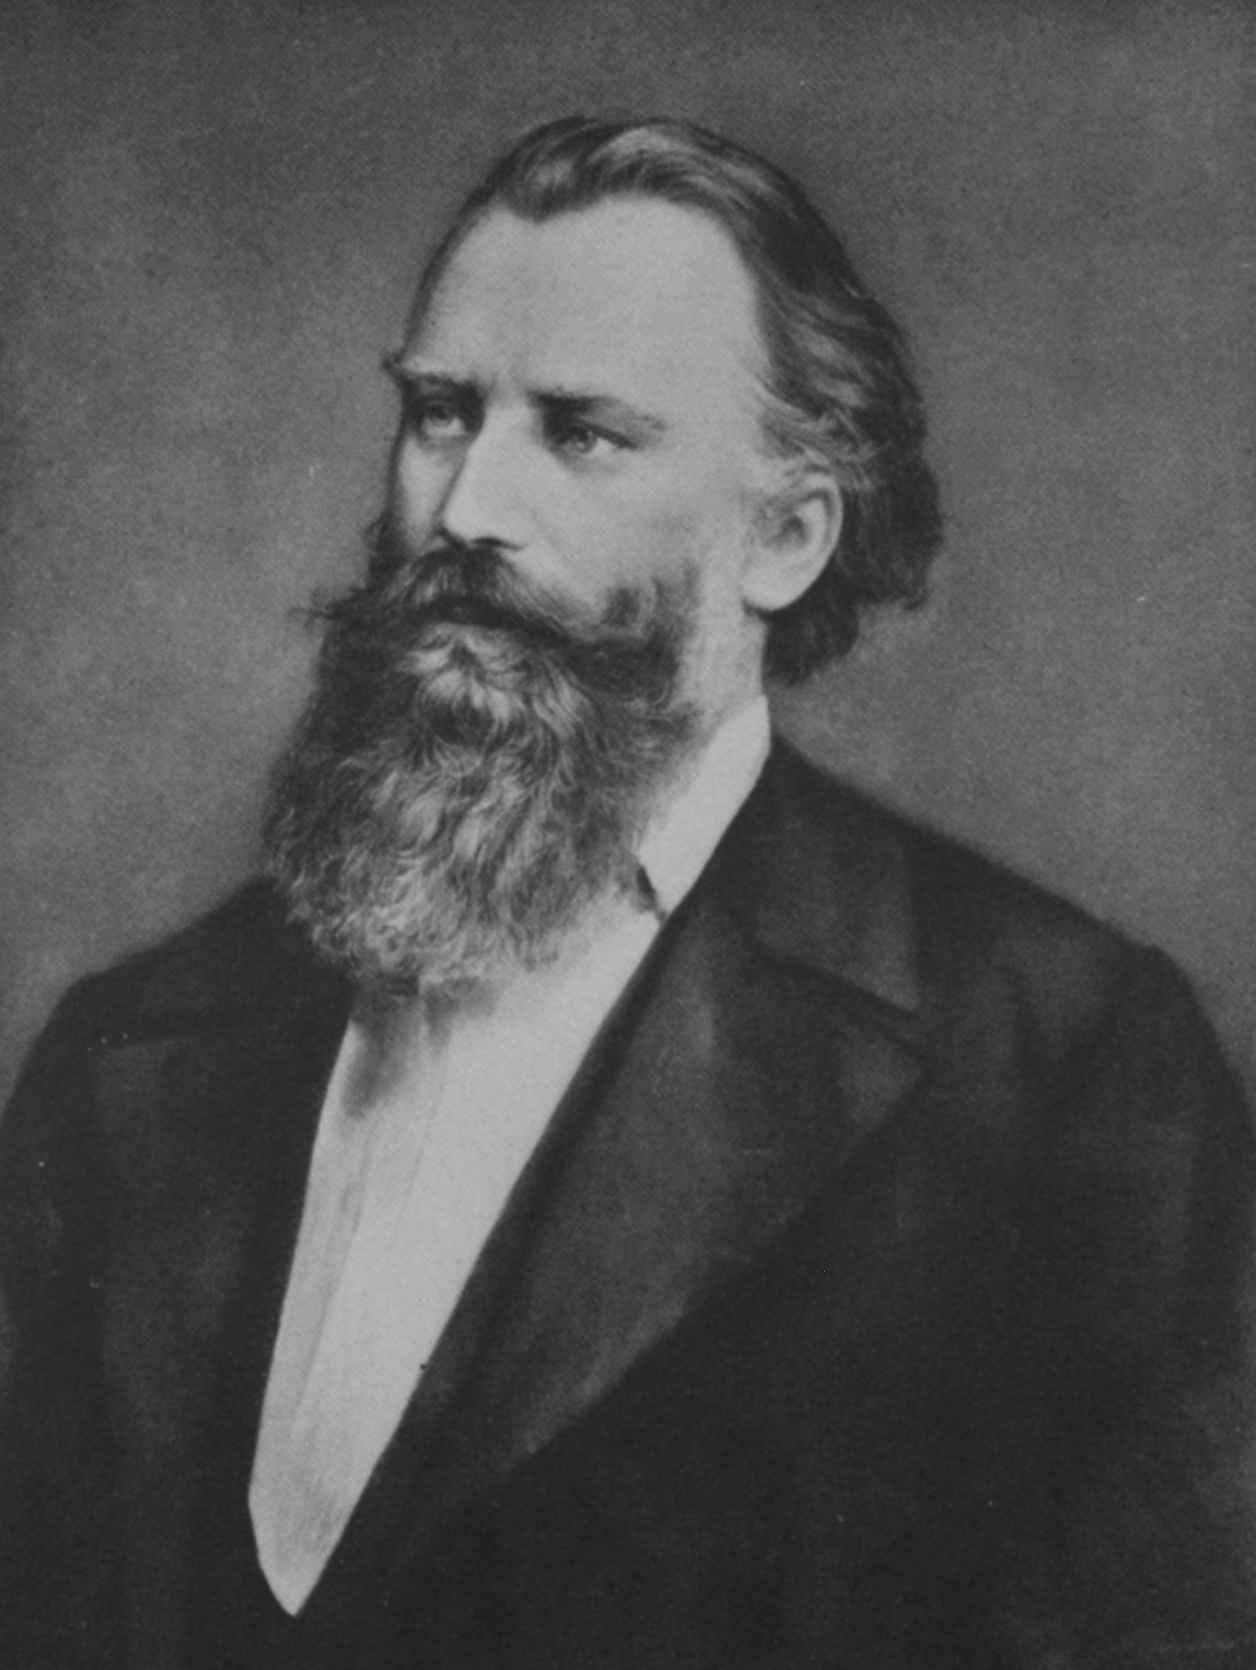 Johannes Brahms J. Brahms - Sviatoslav Richter Quintet For Piano Two Violins Viola And Cello In F Minor Op. 34